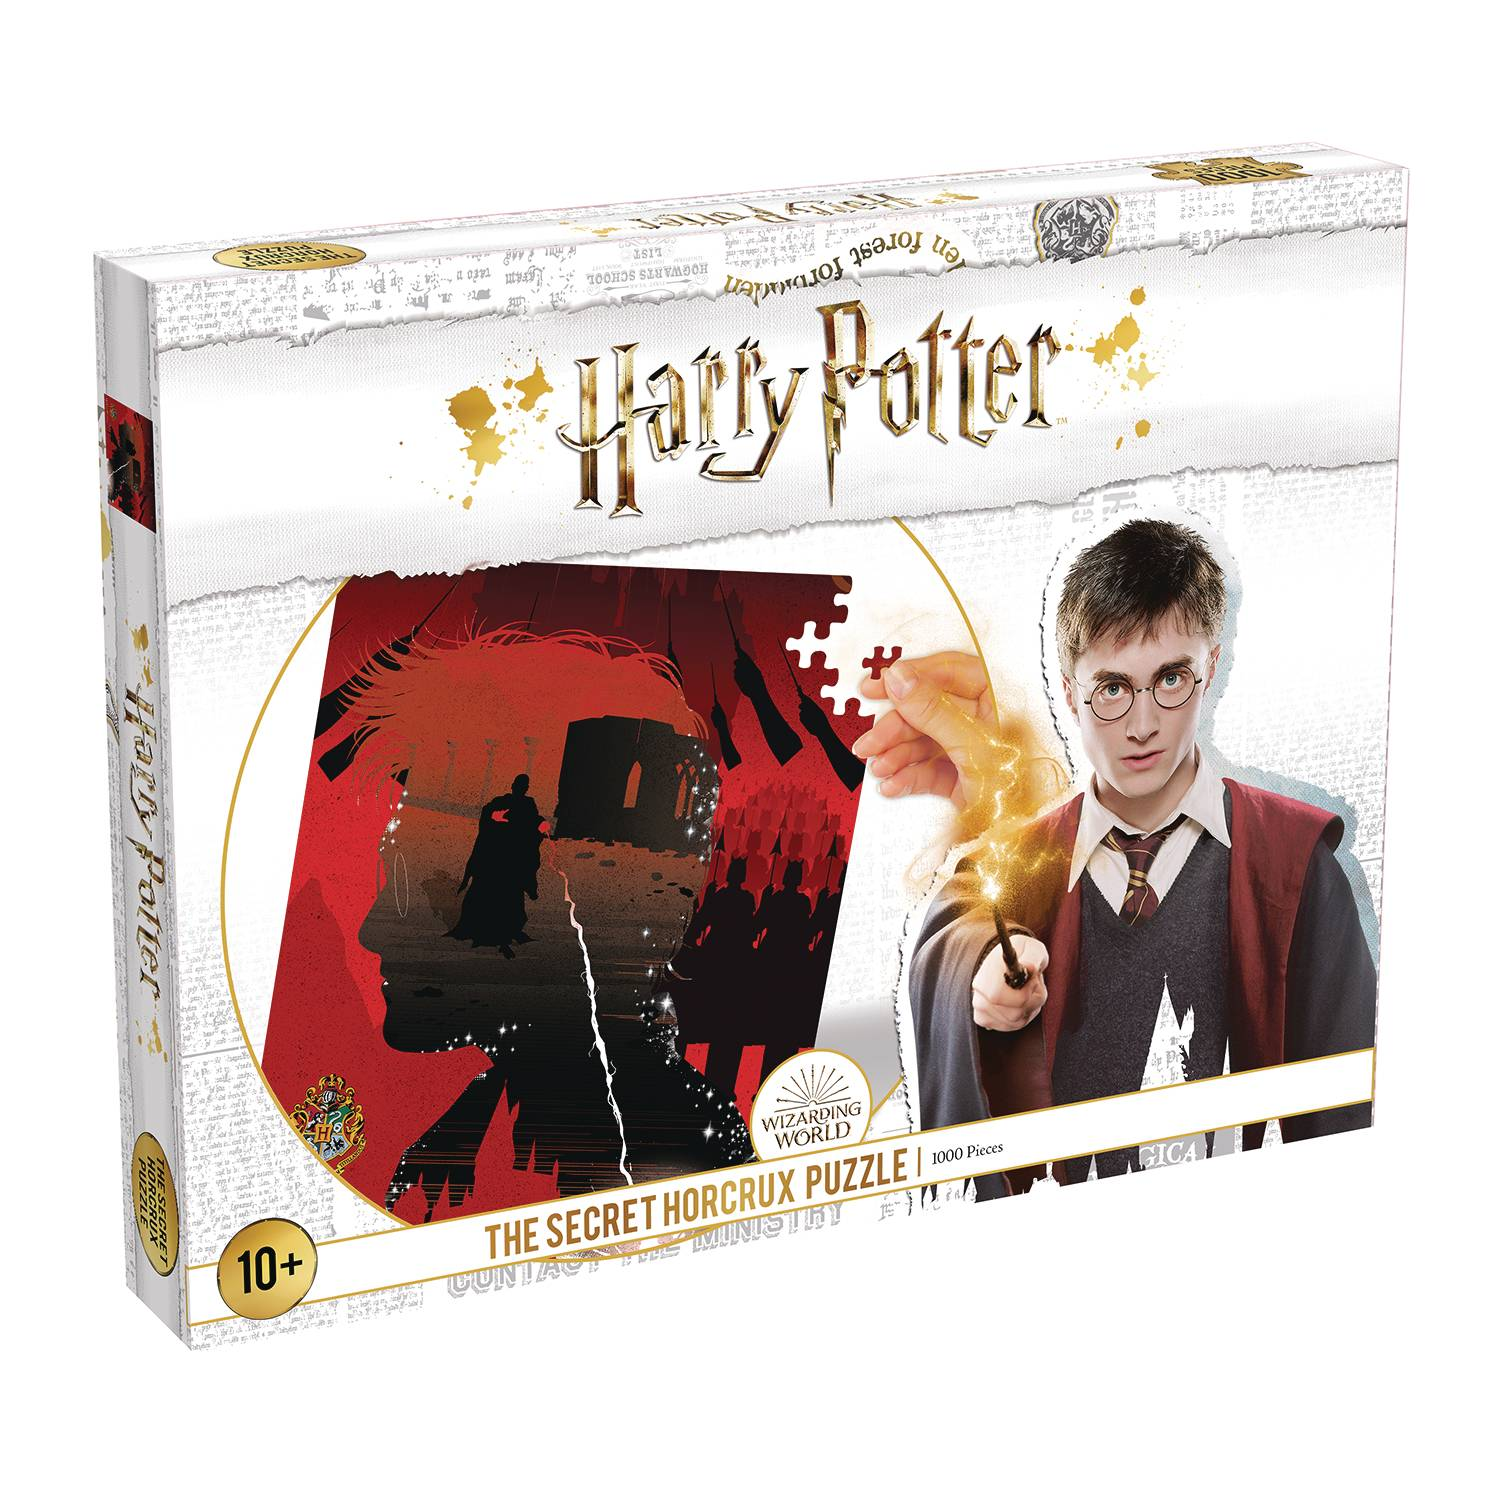 HARRY POTTER HORCRUX 1000PC PUZZLE